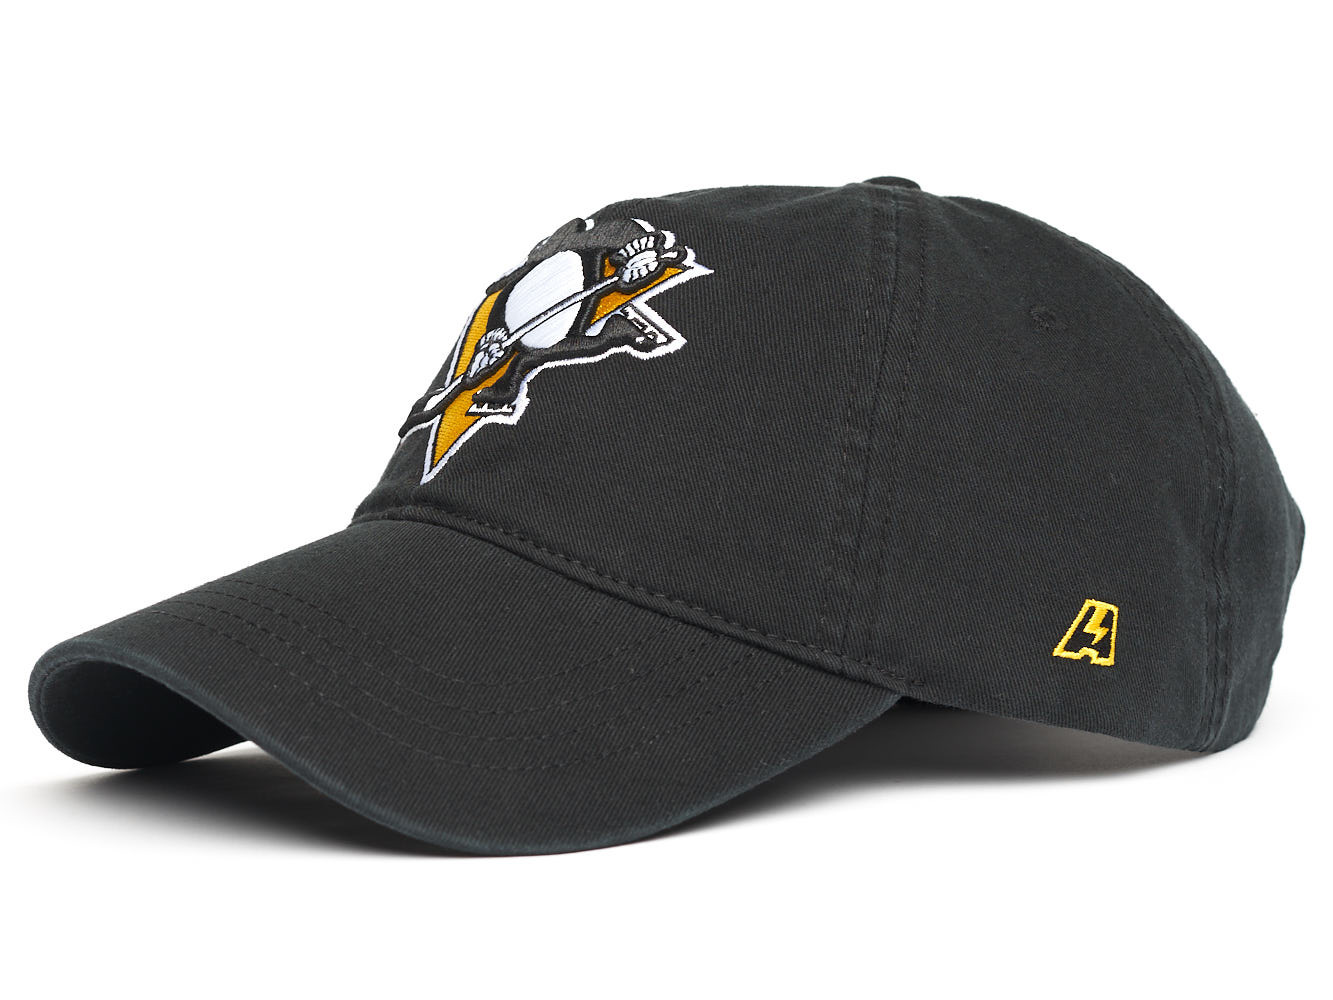 Бейсболка NHL Pittsburgh Penguins облегченная